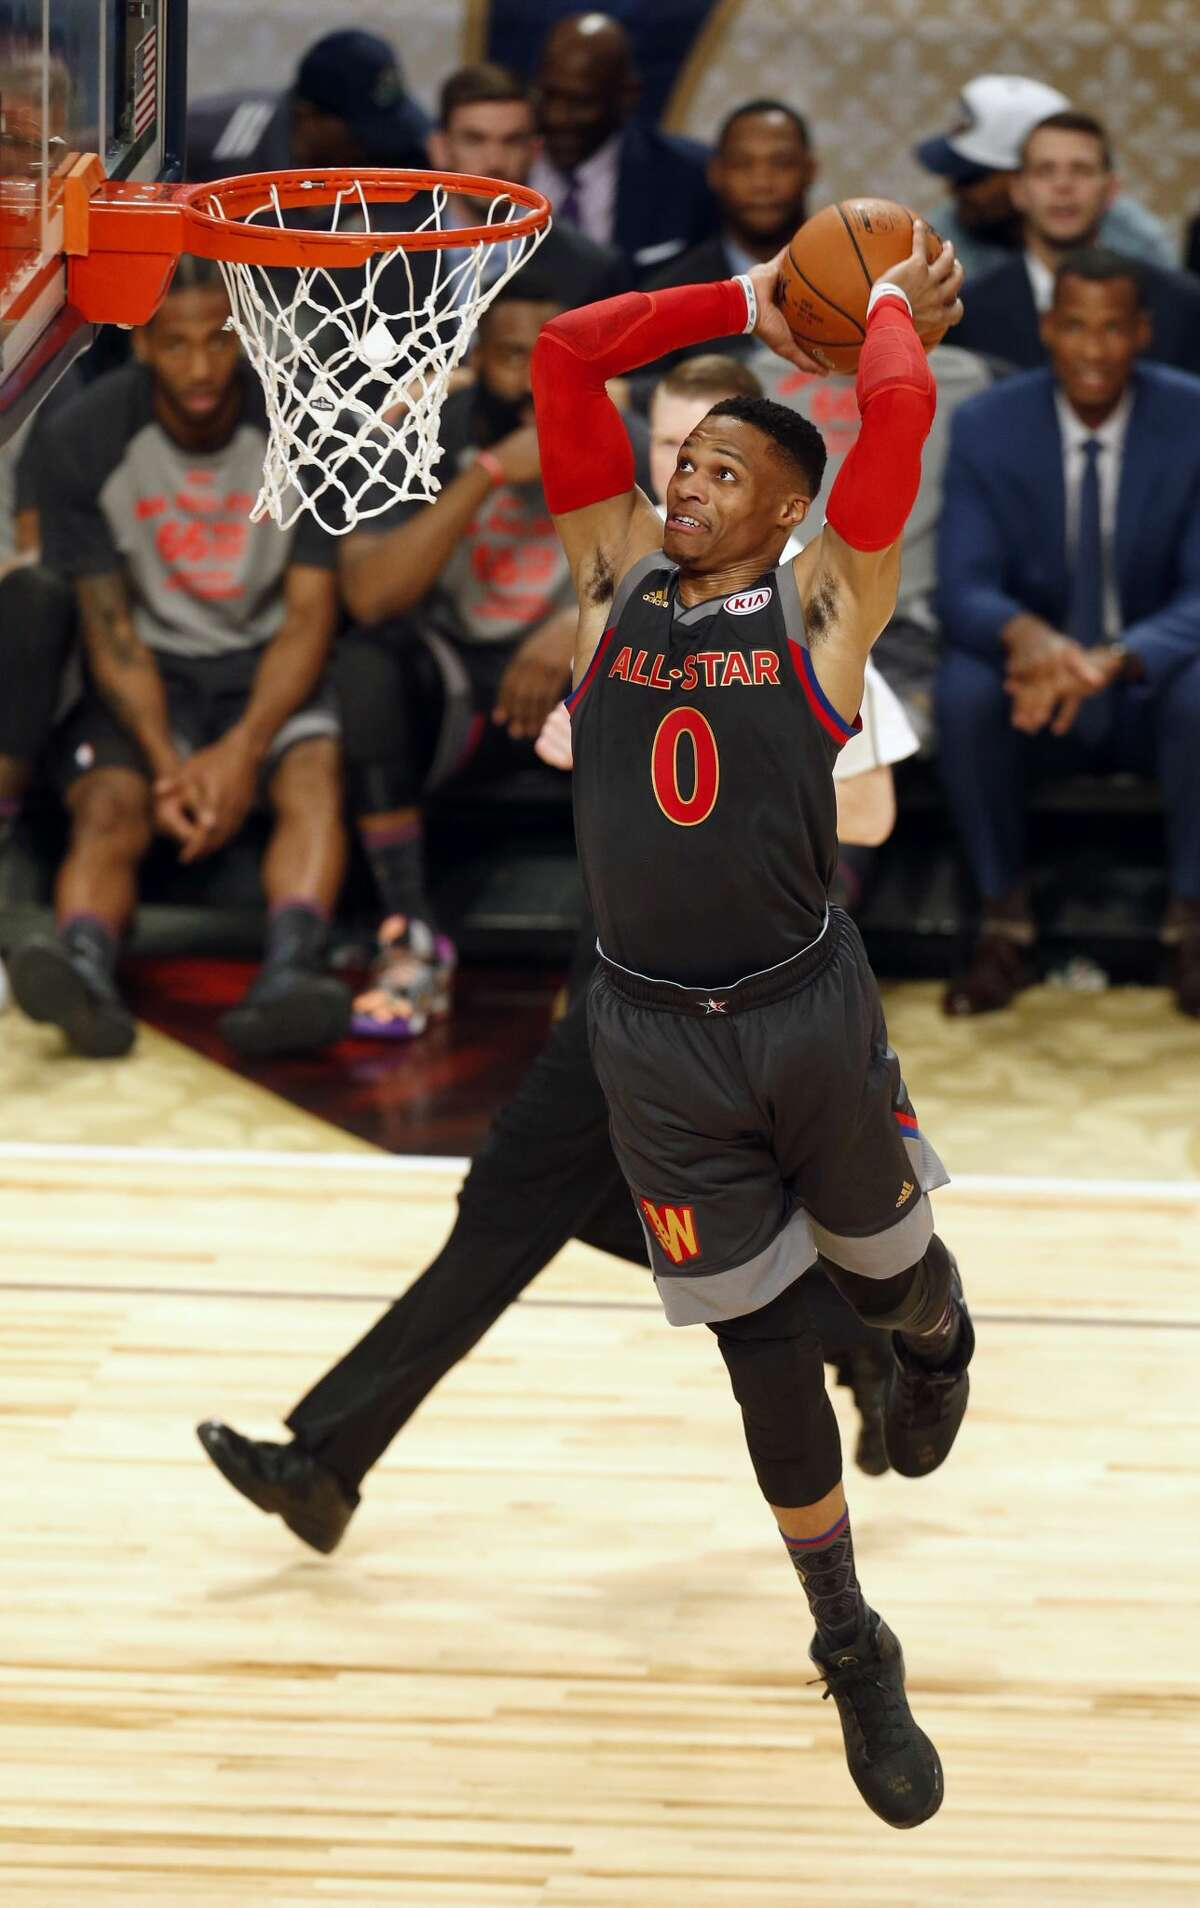 Western Conference guard Russell Westbrook, of the Oklahoma City Thunder, dunks during the first half of the NBA All-Star Game in New Orleans, Sunday, Feb. 19, 2017. (AP Photo/Max Becherer)